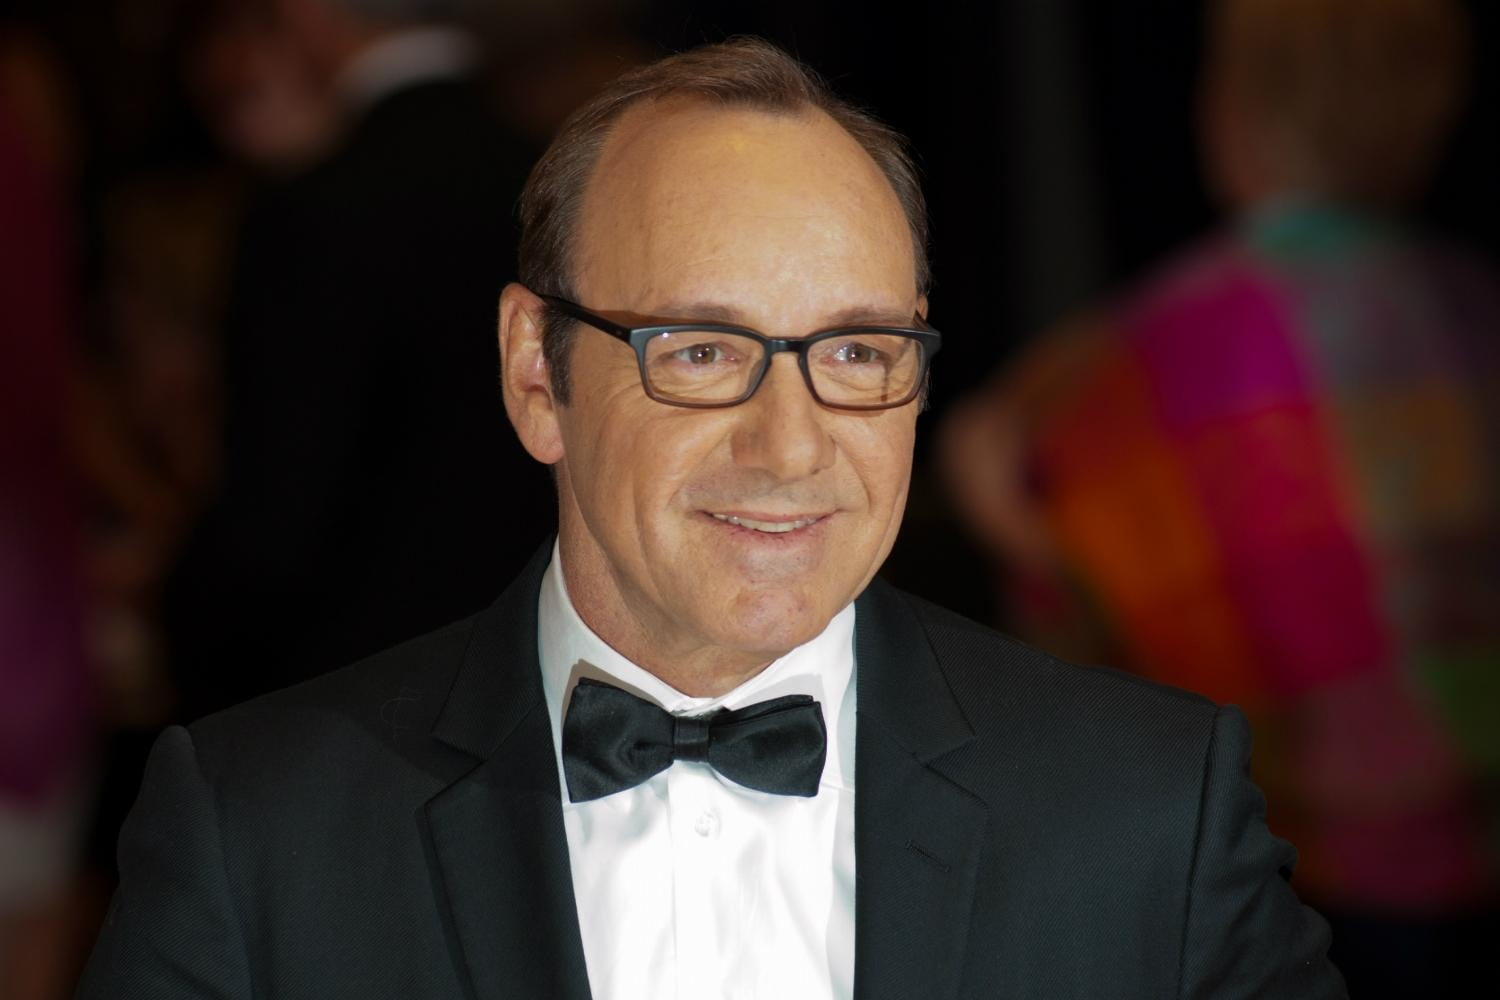 Kevin Spacey has become an Instagram user on February 23, 2016 36